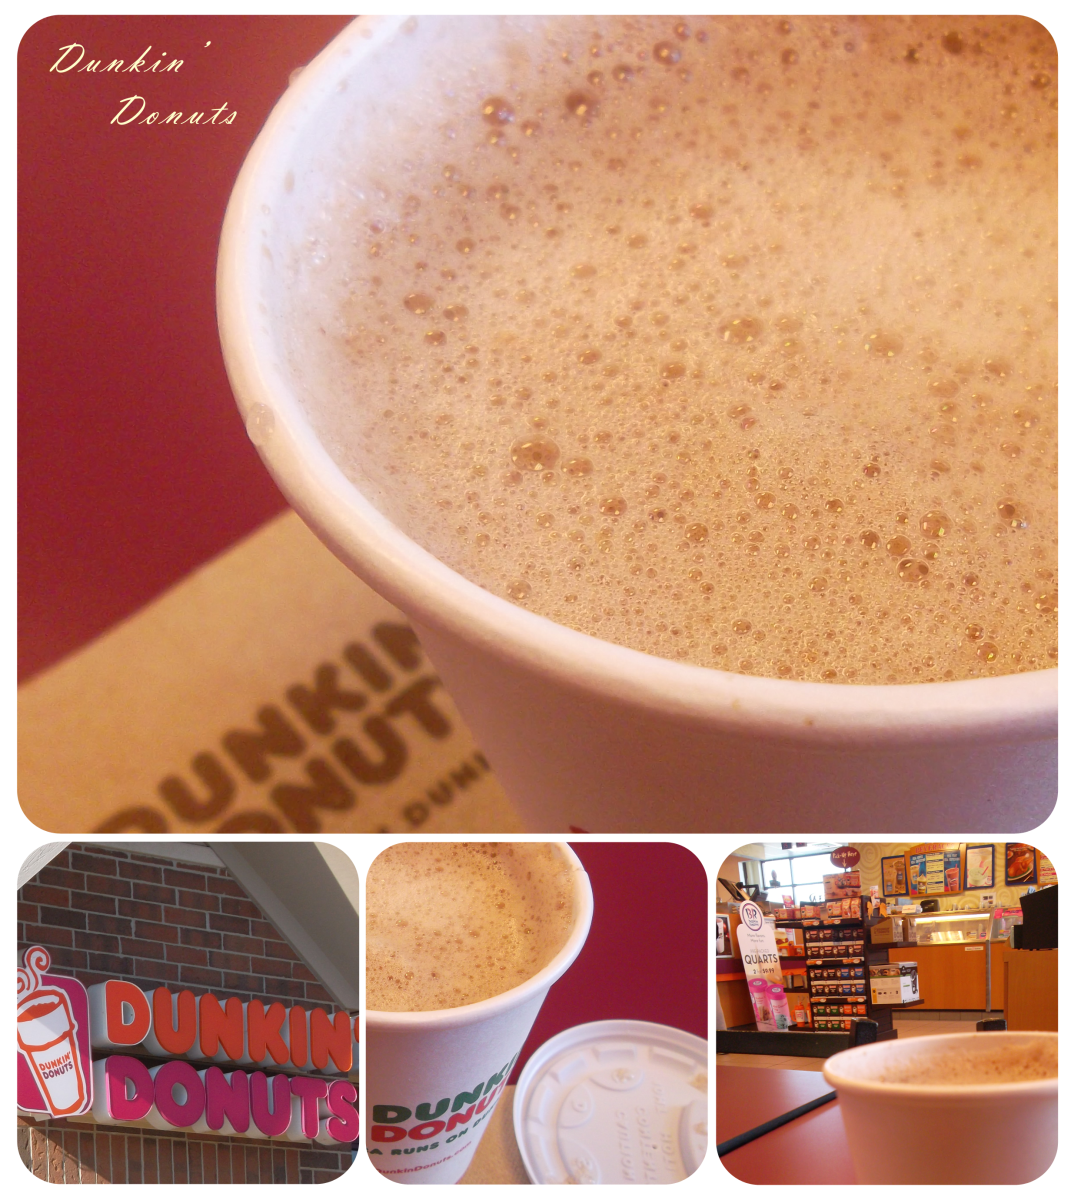 Dunkin' Donuts Original Hot Chocolate